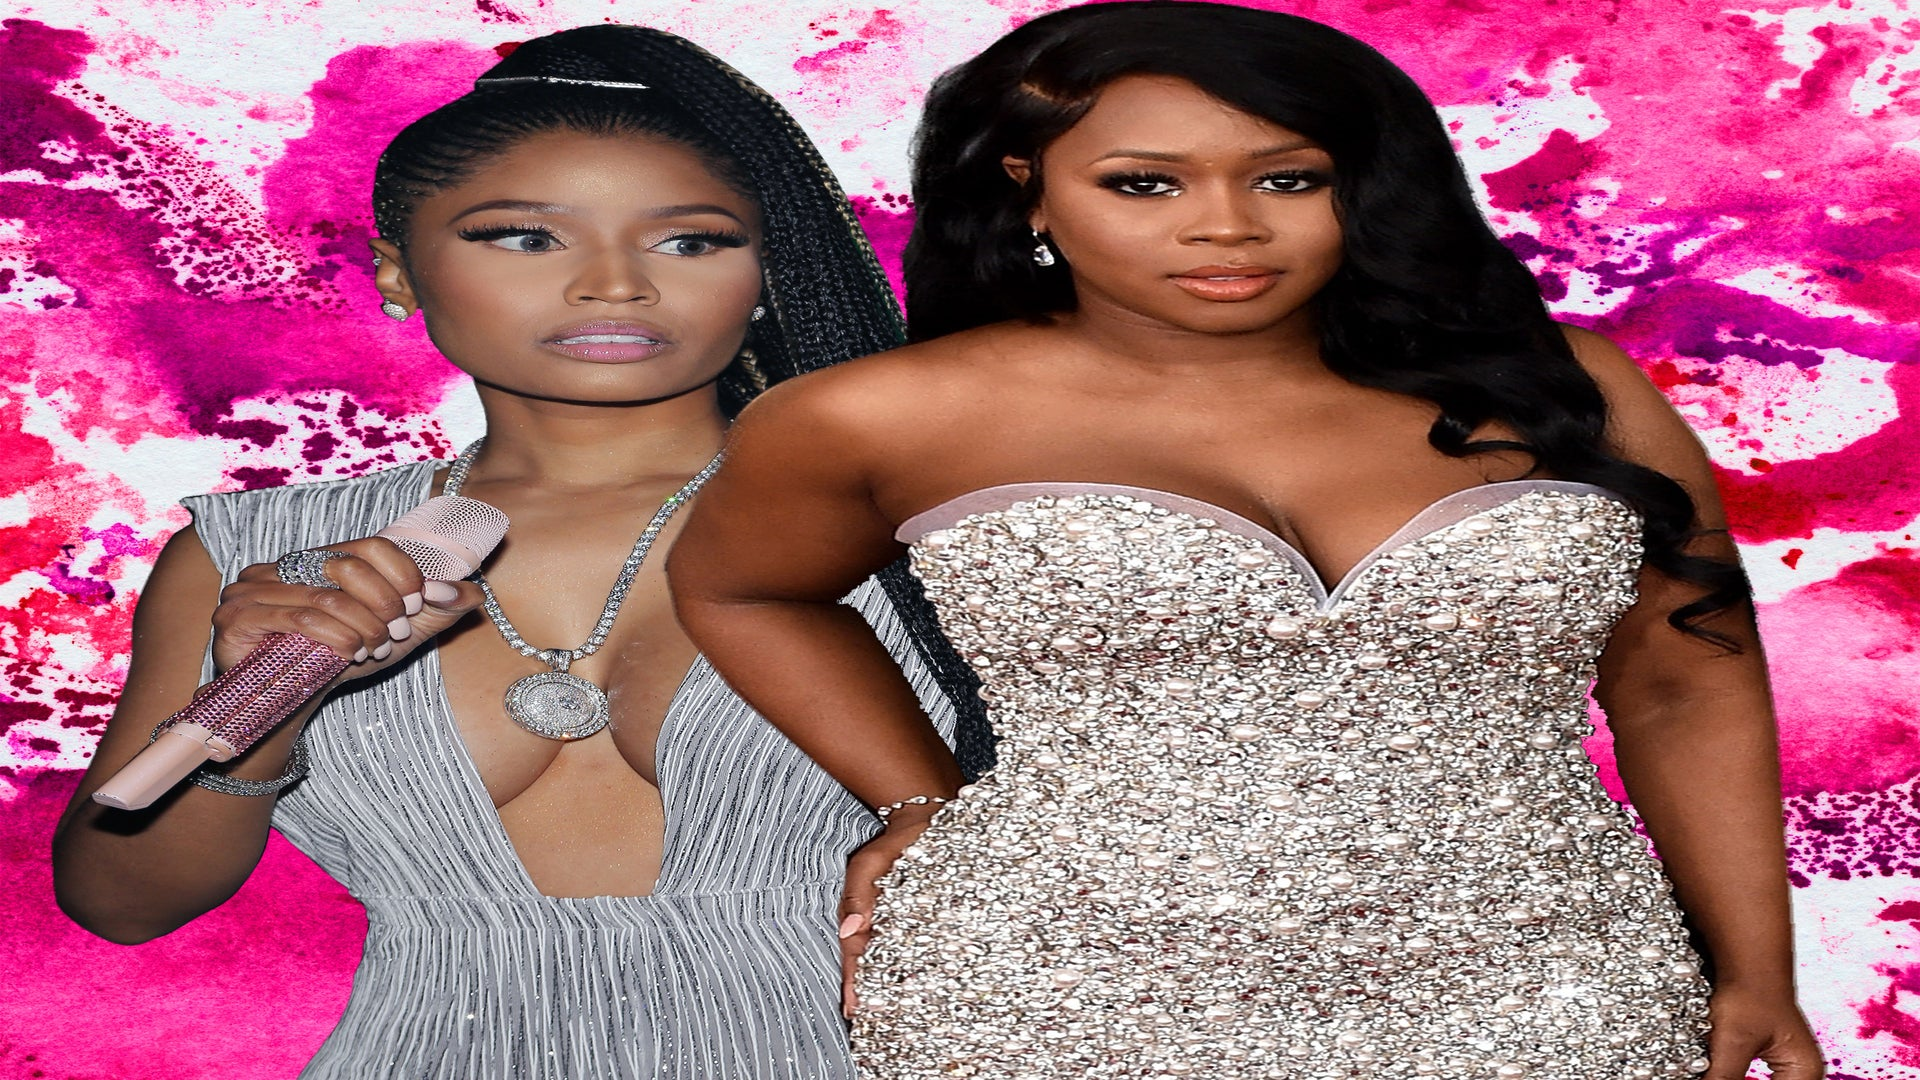 Remy Ma Wishes The Whole Nicki Minaj Thing Would Have Gone Differently